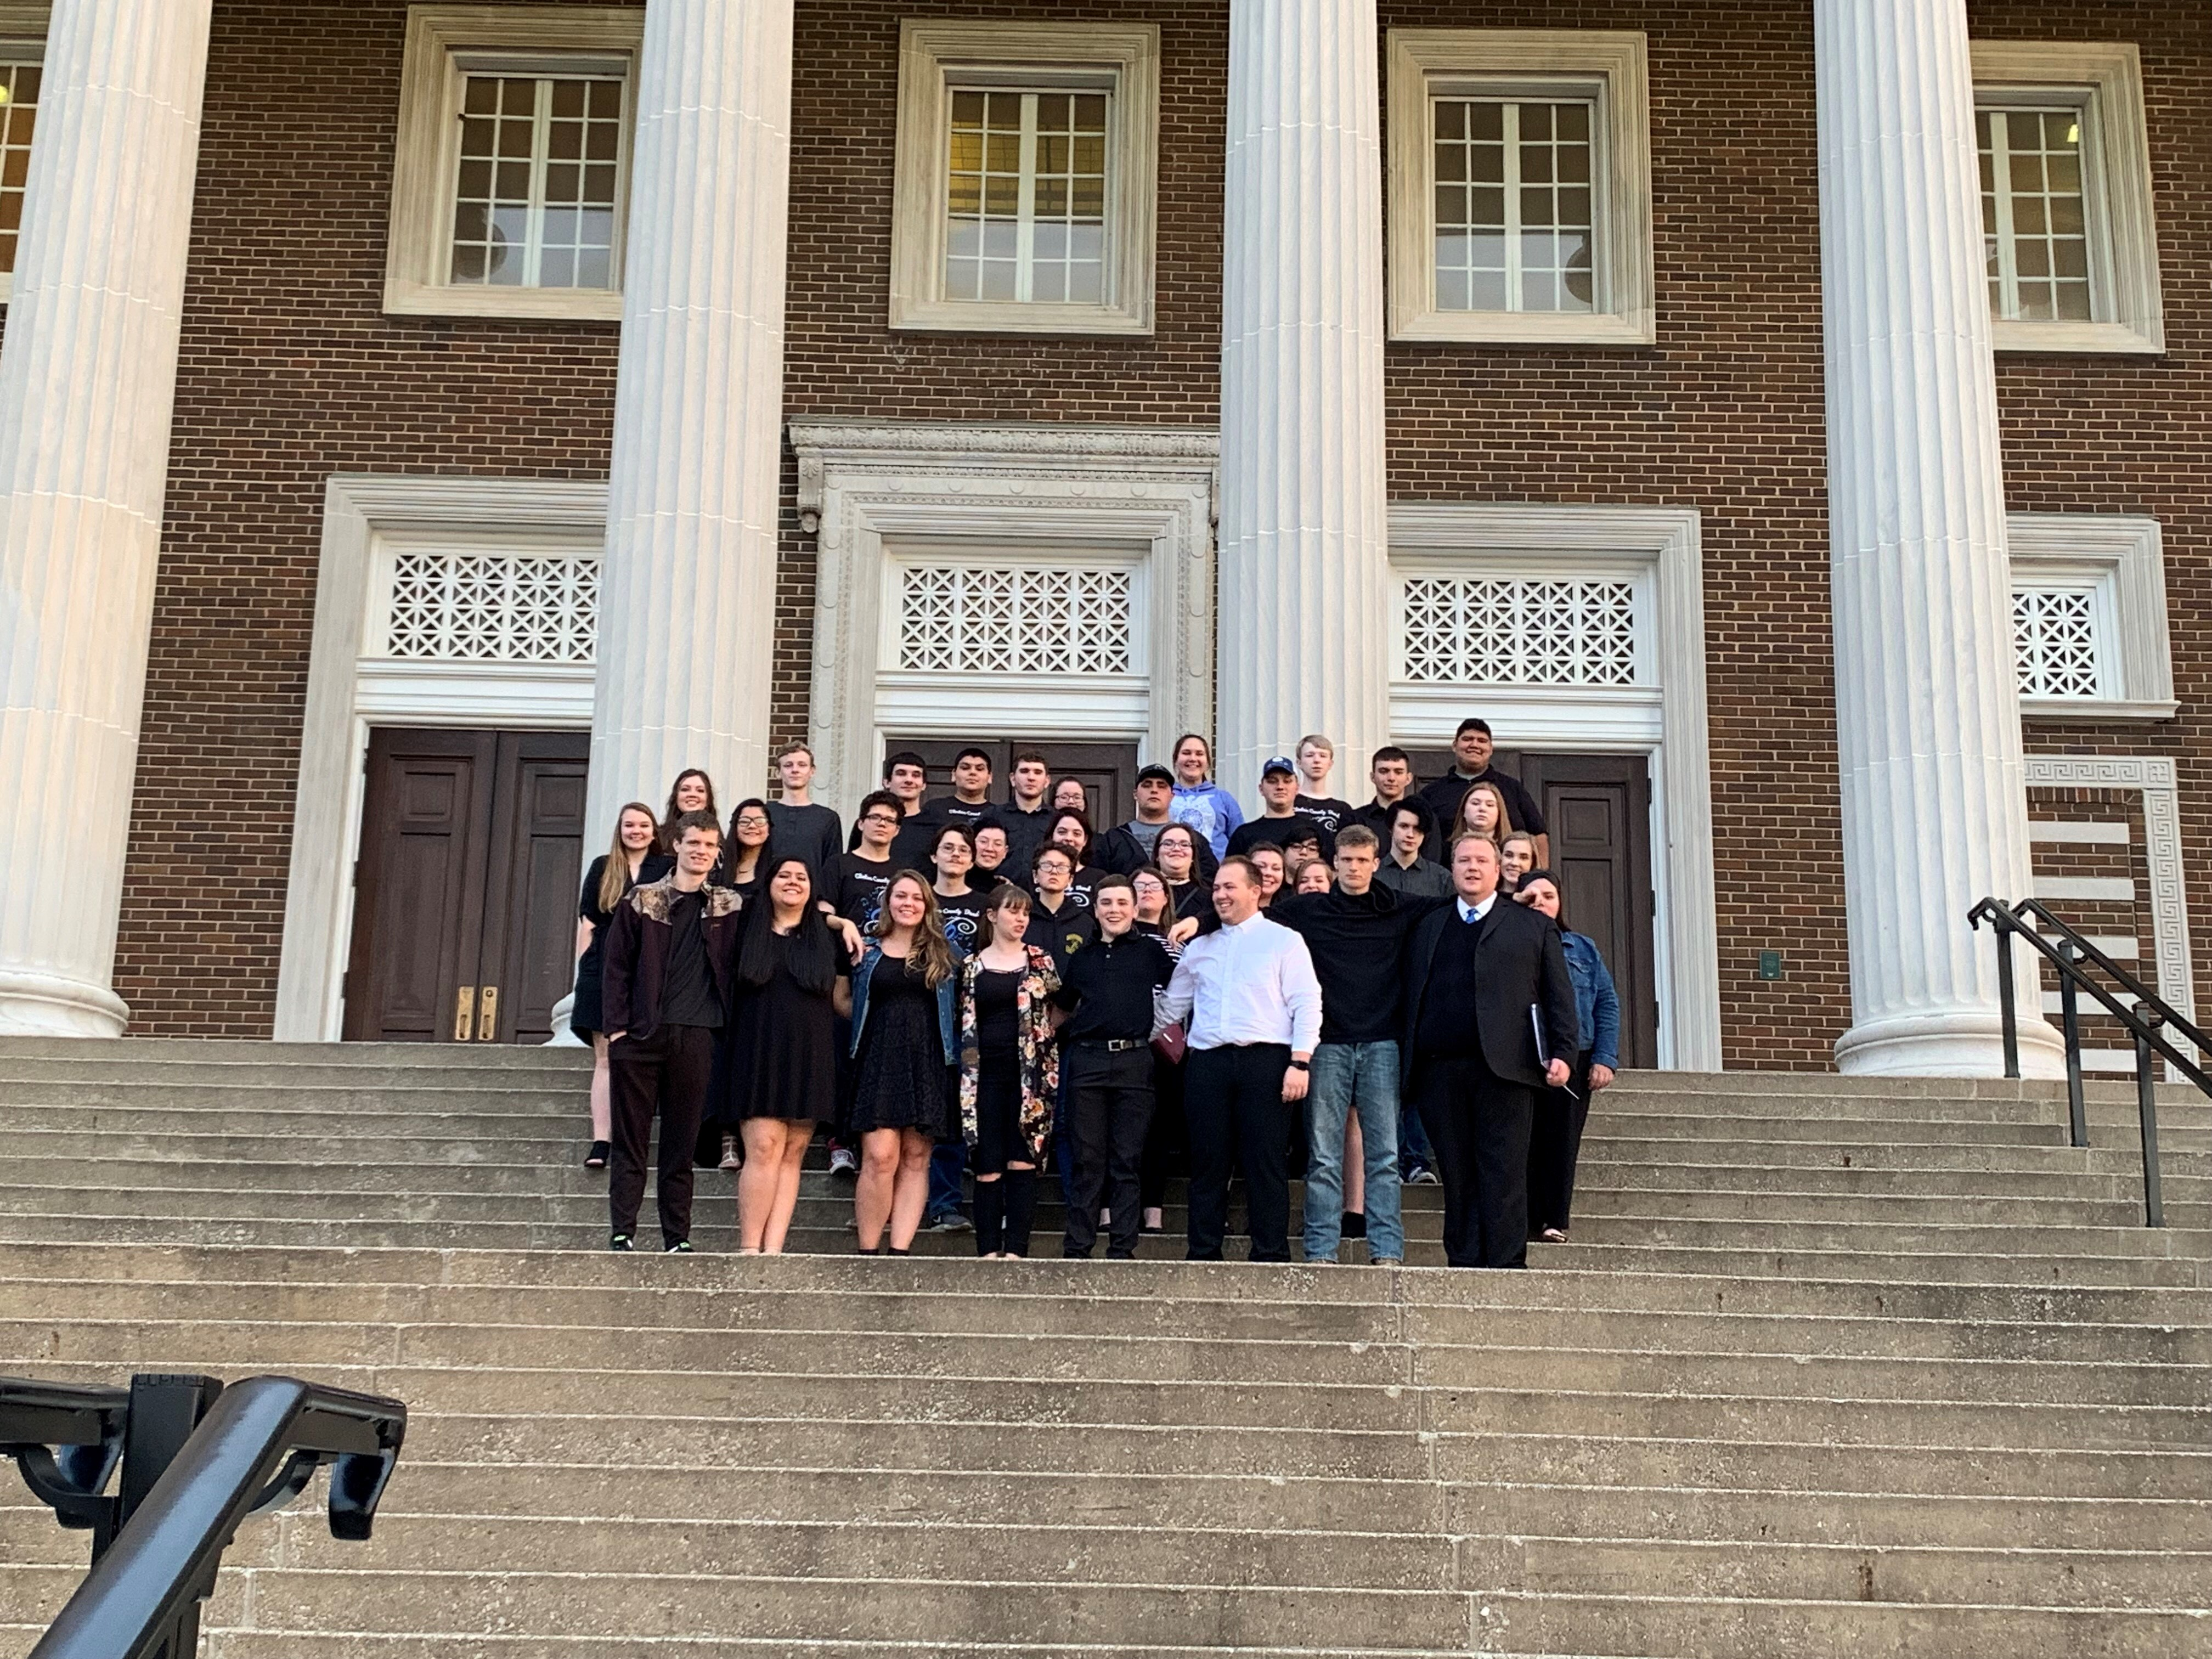 The Clinton County High School band performed at KMEA Concert Assessment at Western Kentucky University in Bowling Green on Friday, April 12th.